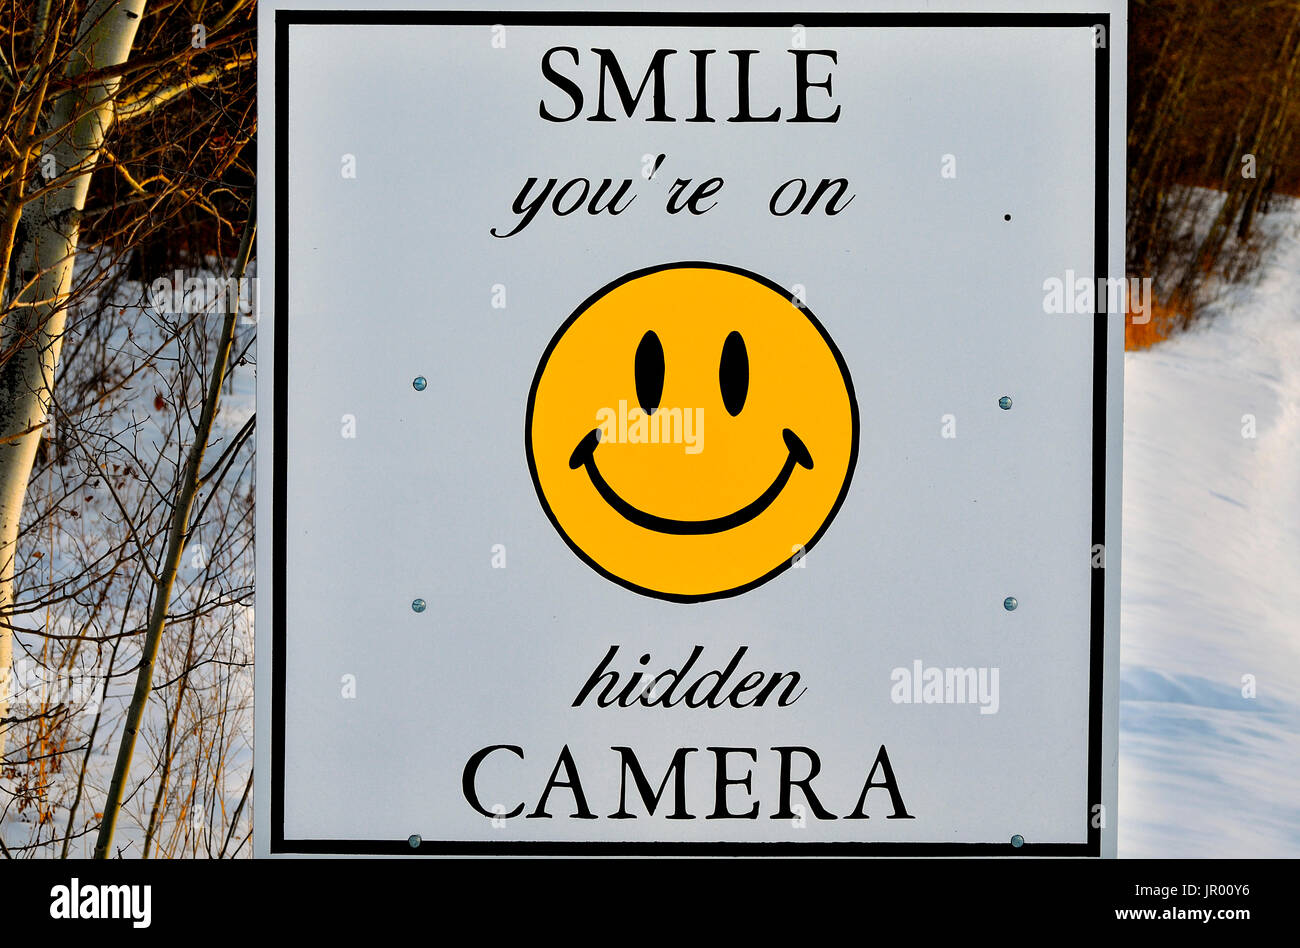 Smile you r on candid camera